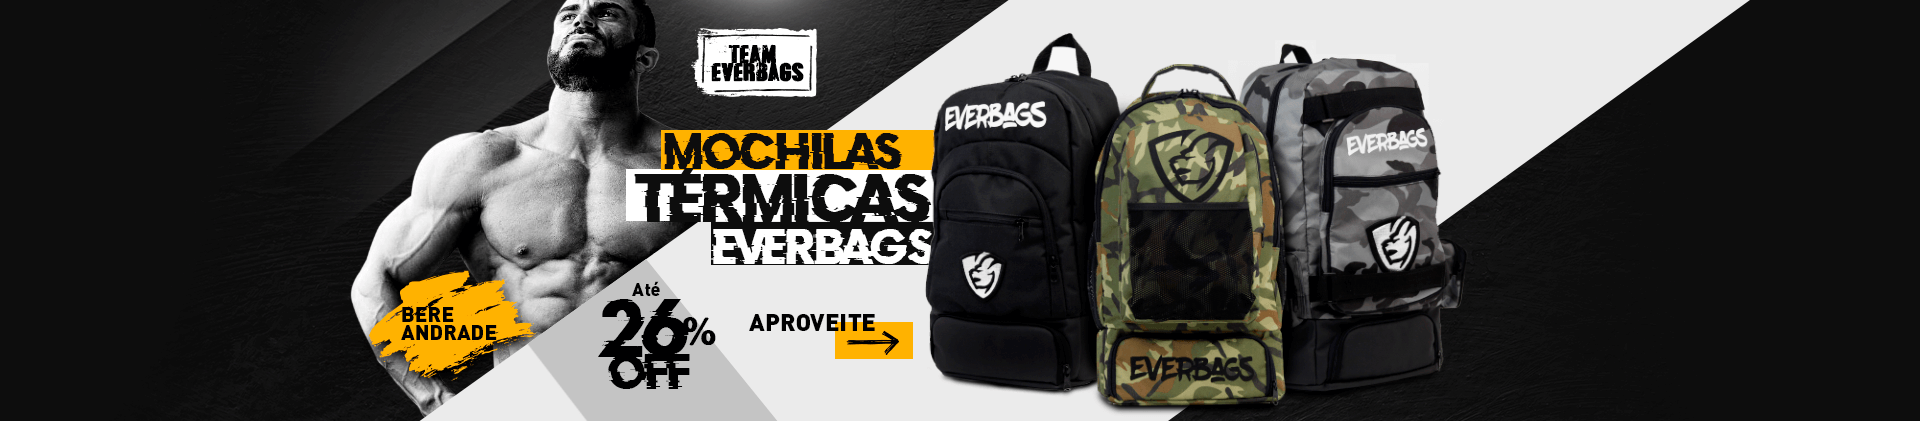 Mochilas Térmicas Everbags